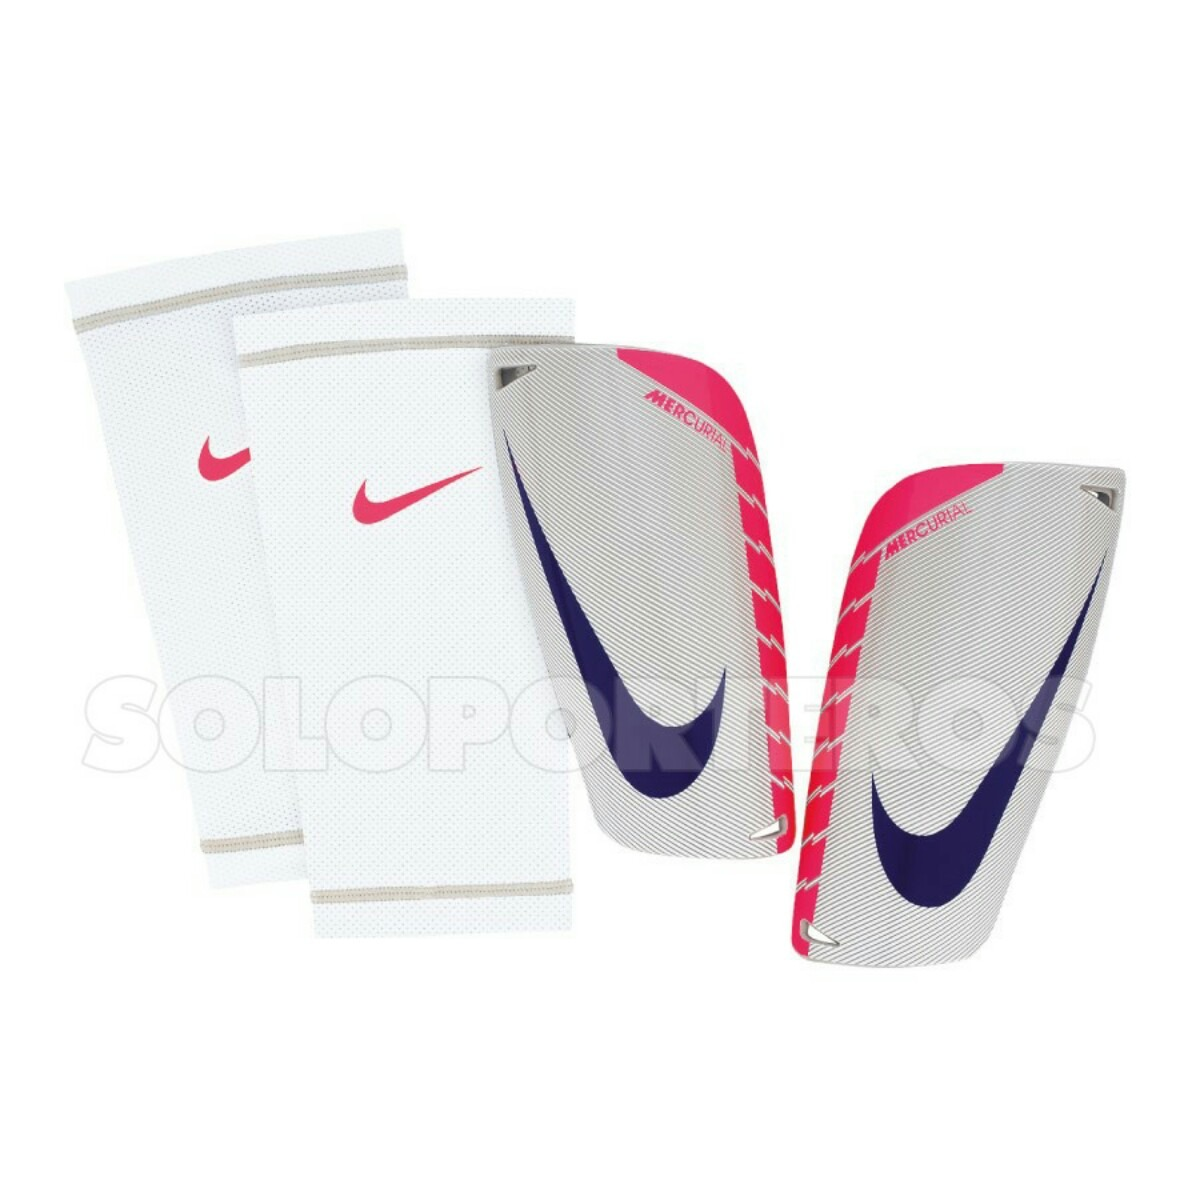 canilleras nike mercurial